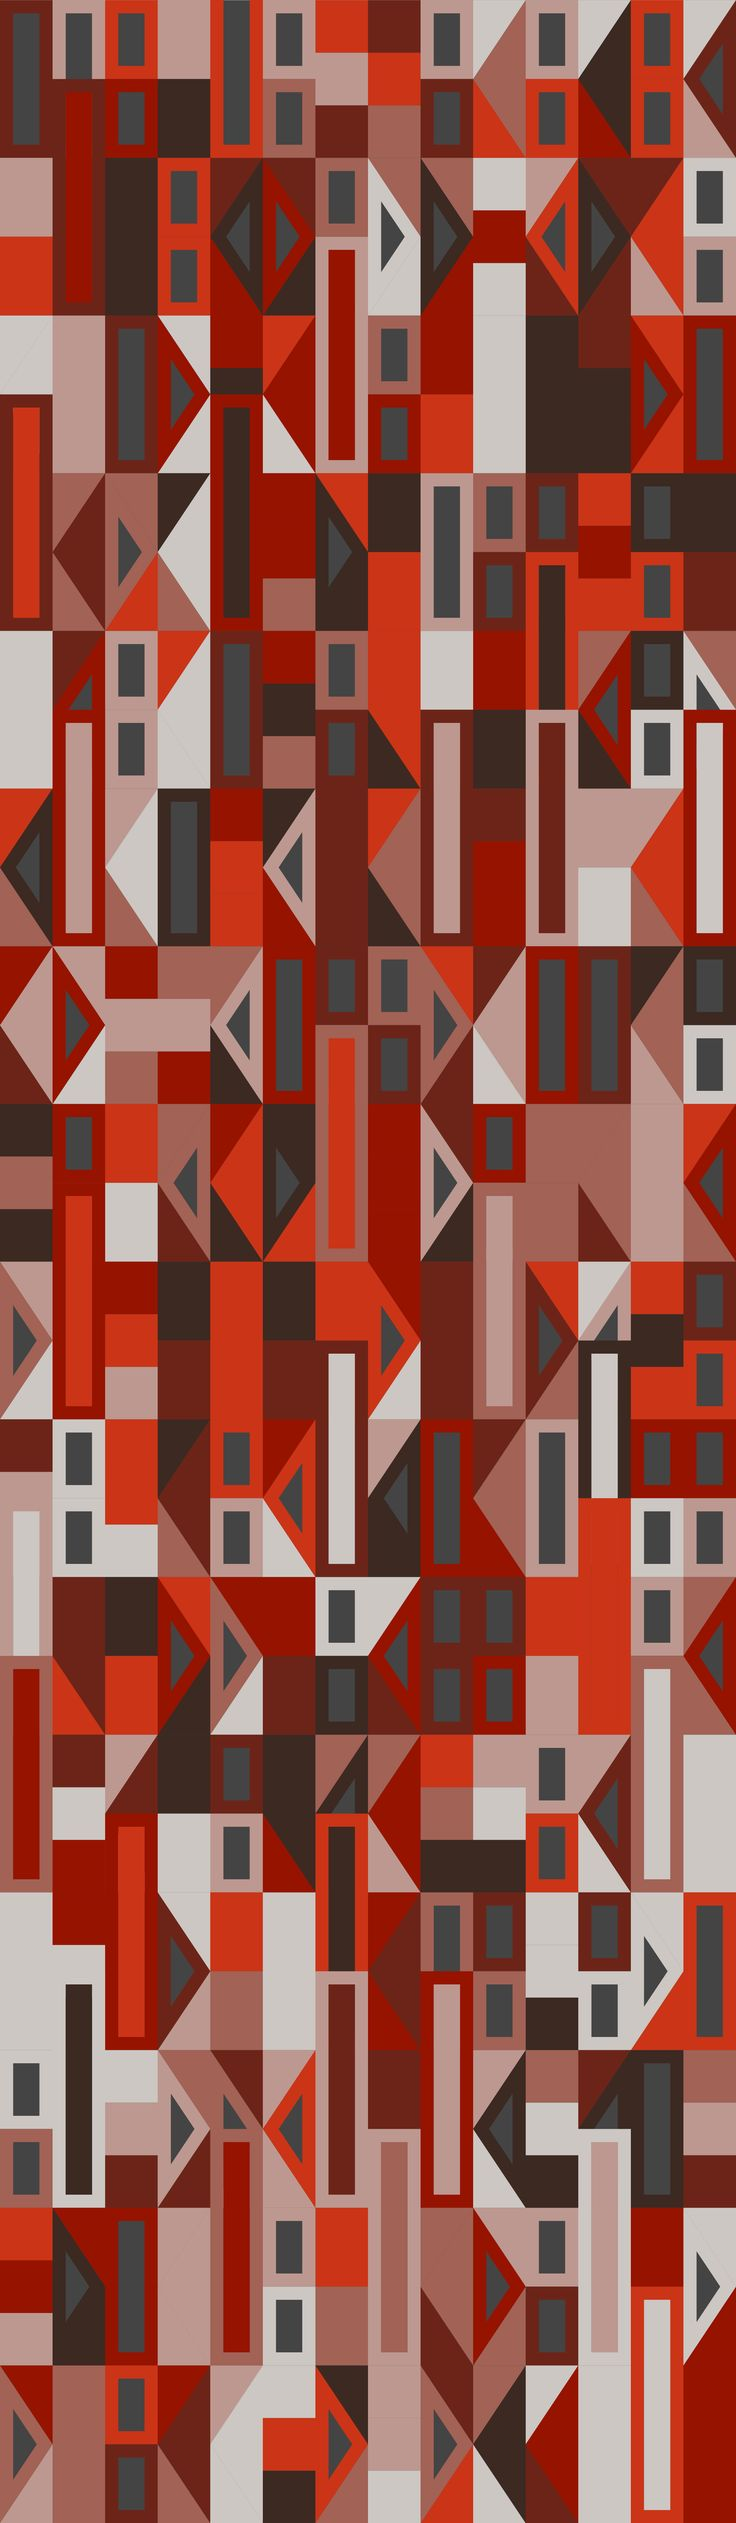 Russfussuk bergundy extravaganza geometric repeating pattern M1A #pattern #patterndesign #patternprint #autumn #fall #orange #shapes #grid #orange